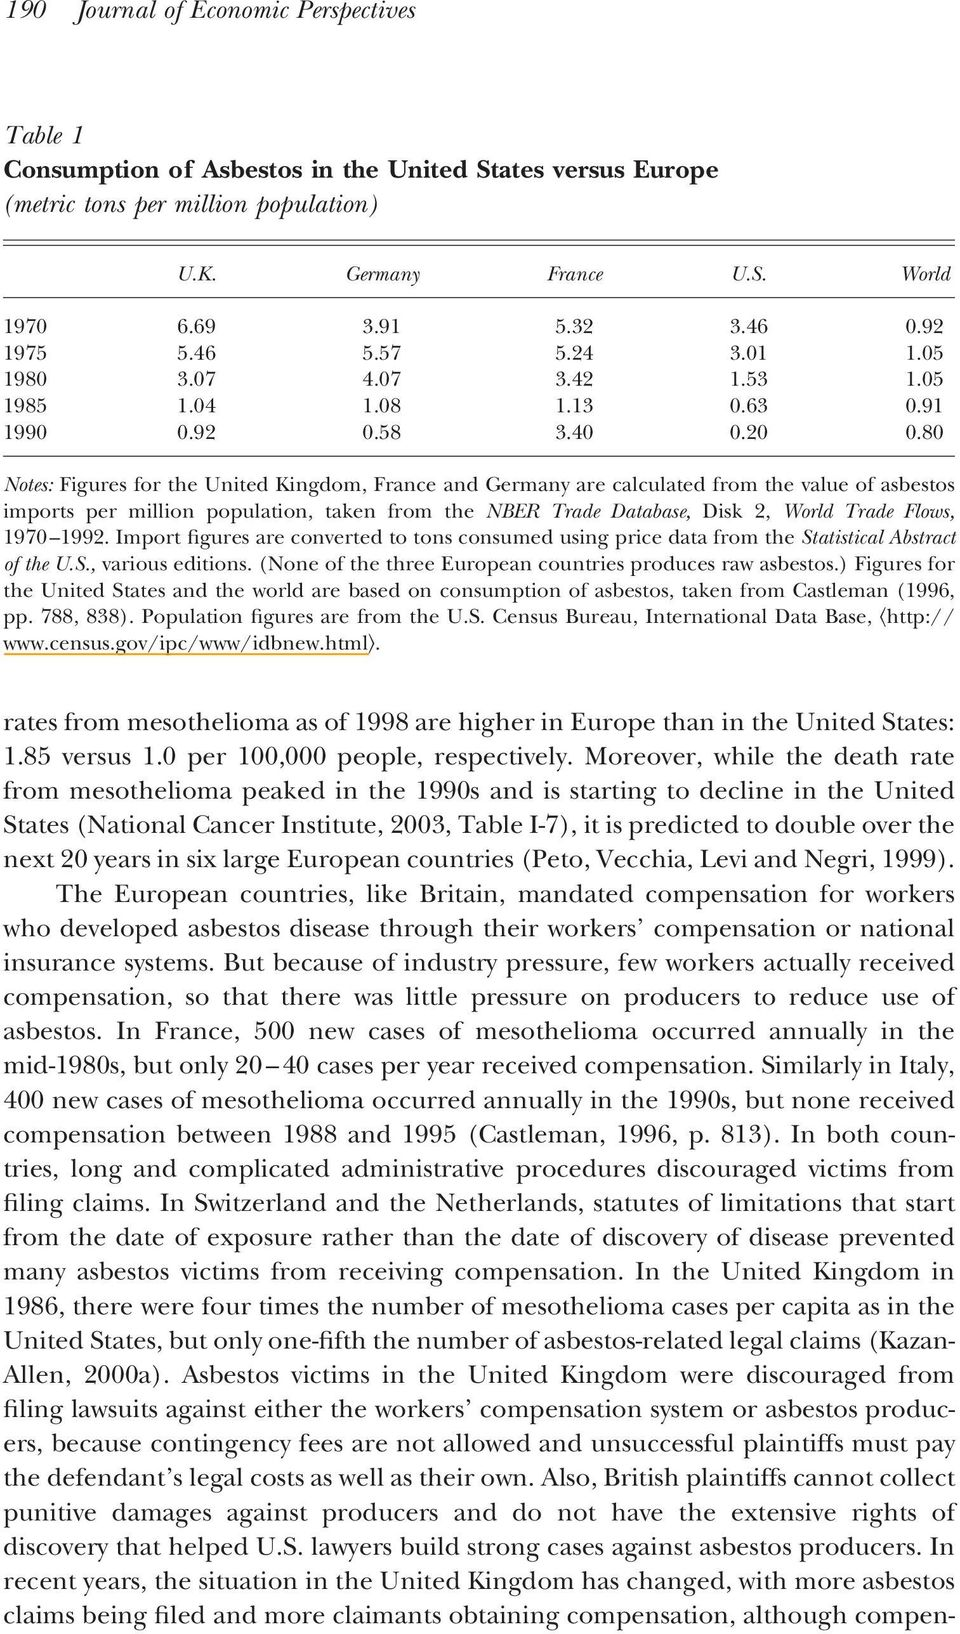 80 Notes: Figures for the United Kingdom, France and Germany are calculated from the value of asbestos imports per million population, taken from the NBER Trade Database, Disk 2, World Trade Flows,